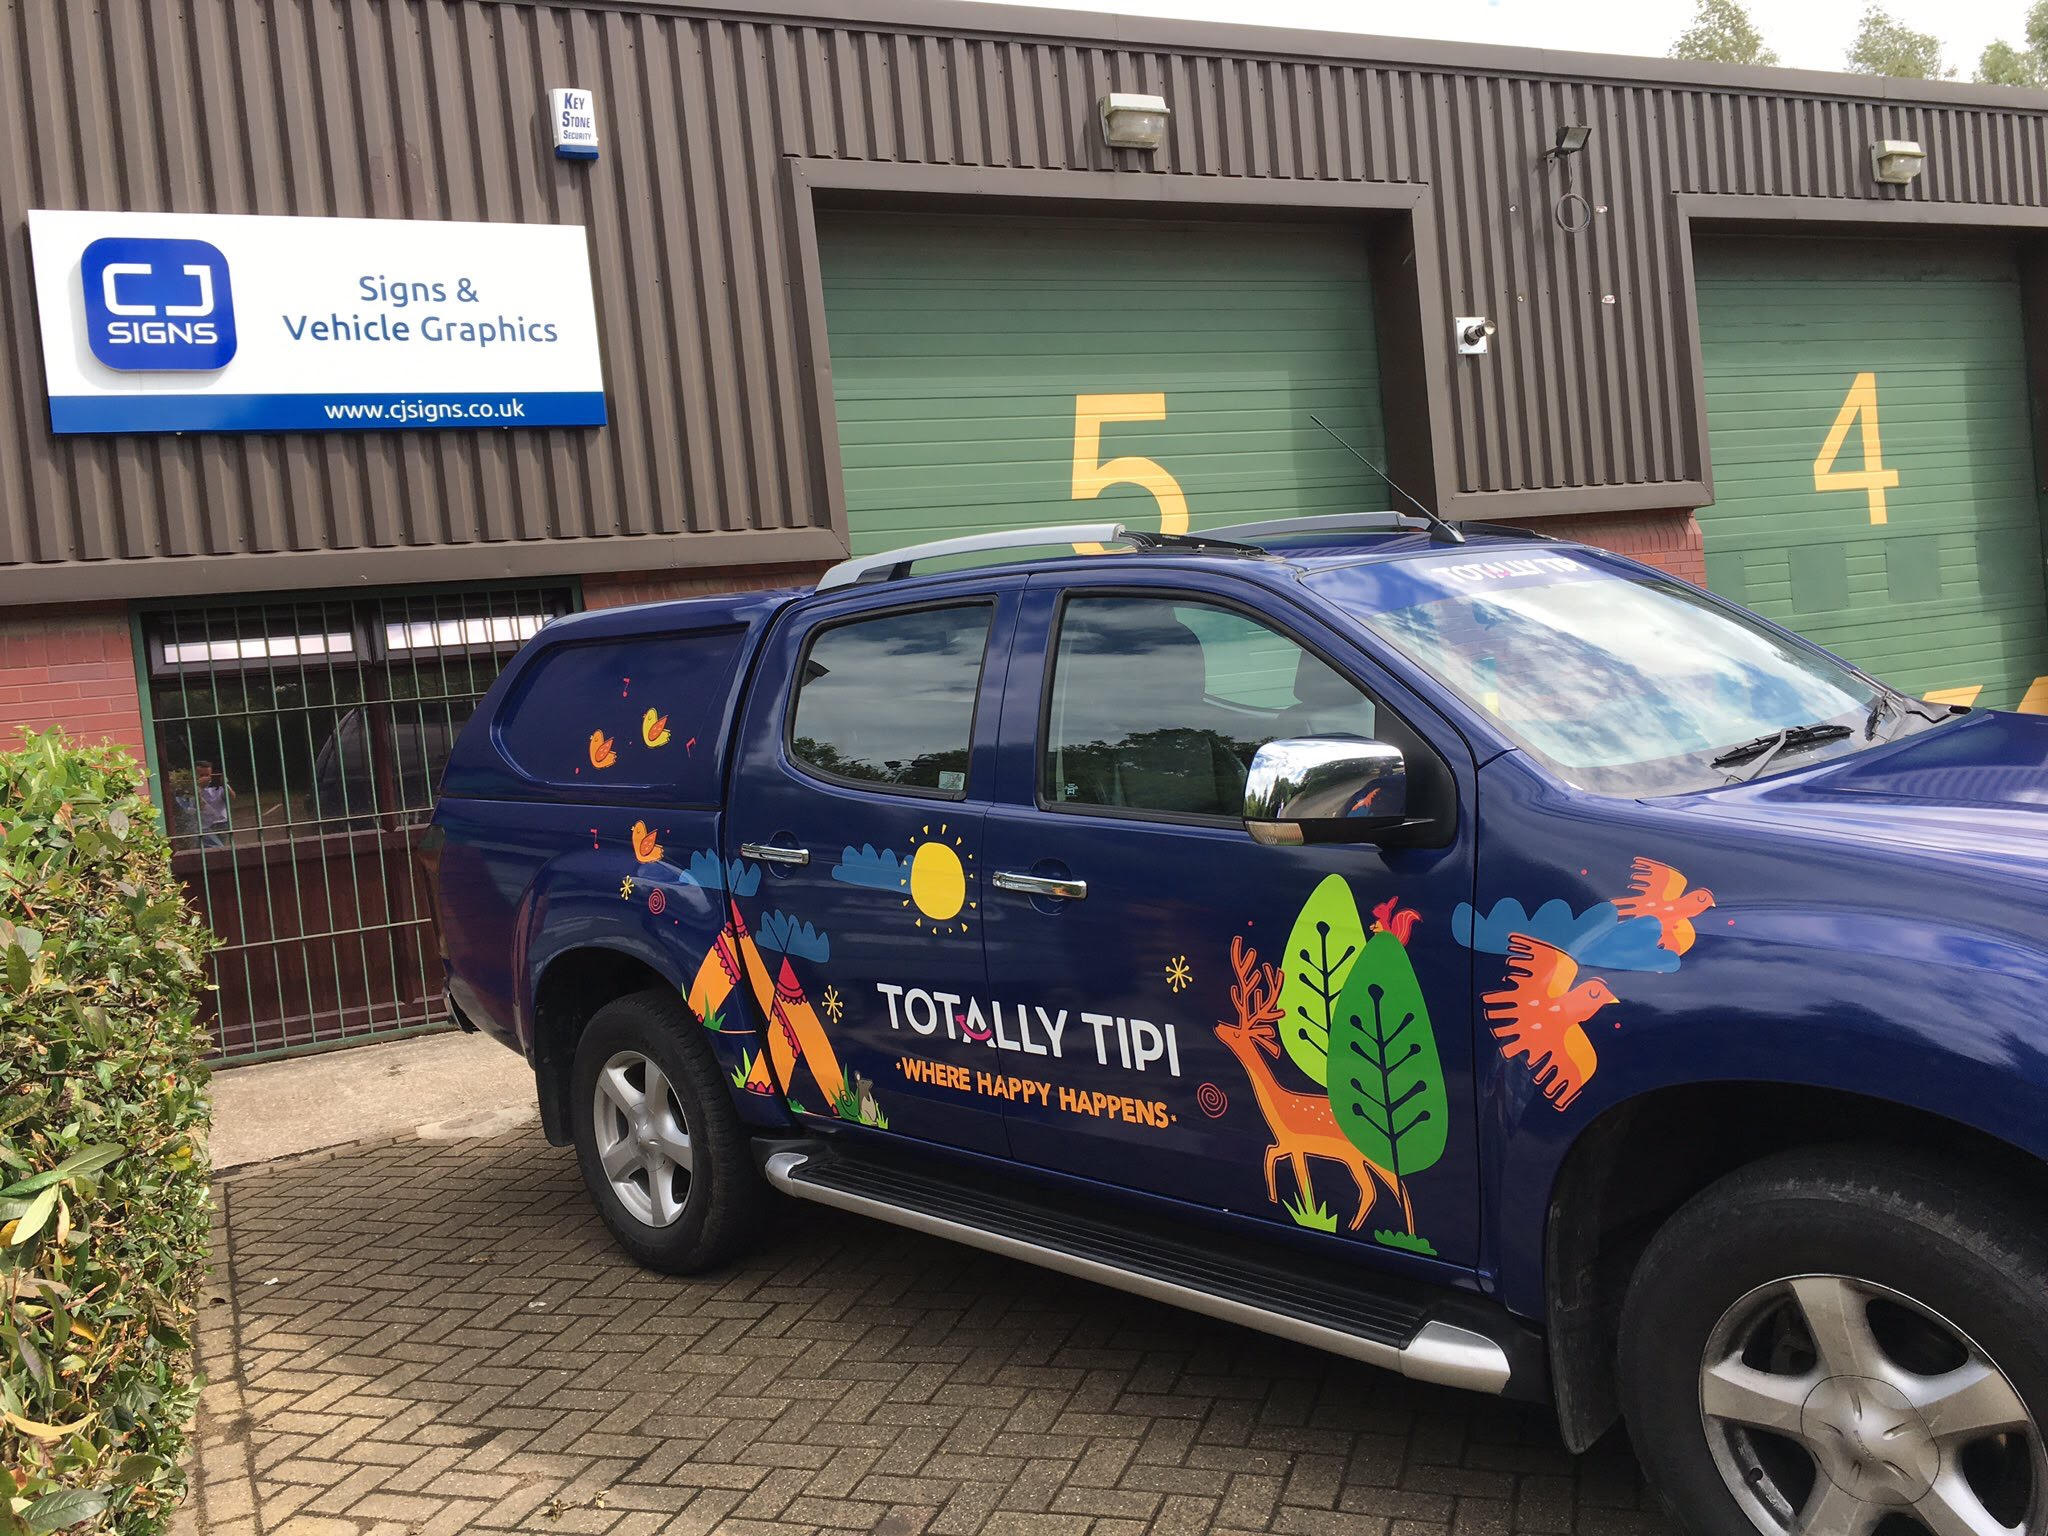 Totally Tipi Vehicle Graphics